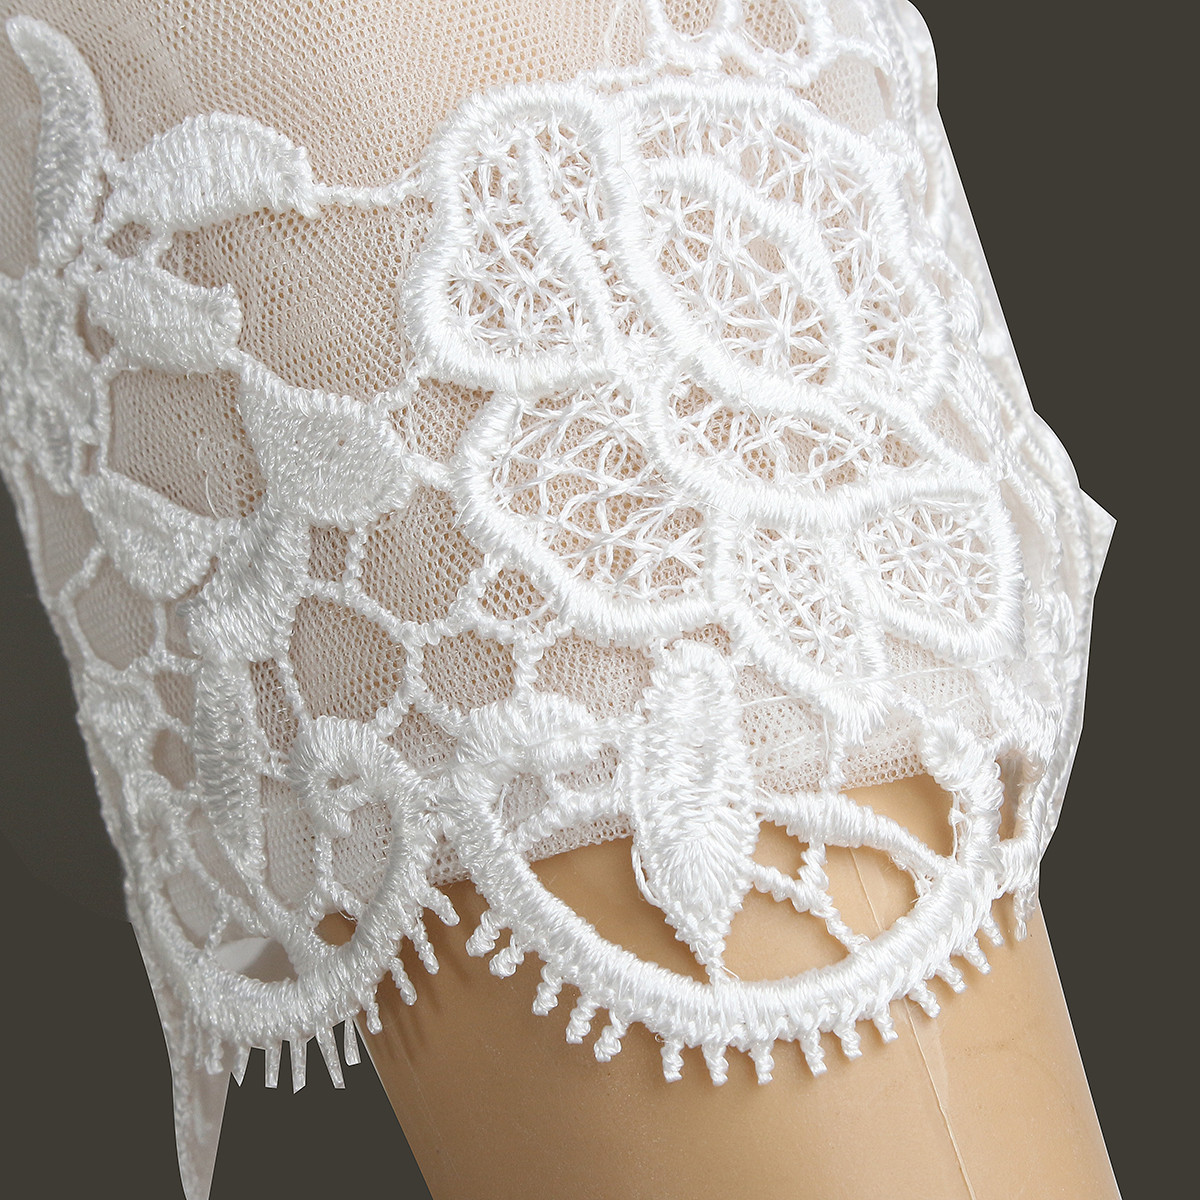 Lace Shawl Fresh Bride Lace Embroidery Shoulder Shawl Bridal Long Sleeve Of Top 45 Pictures Lace Shawl